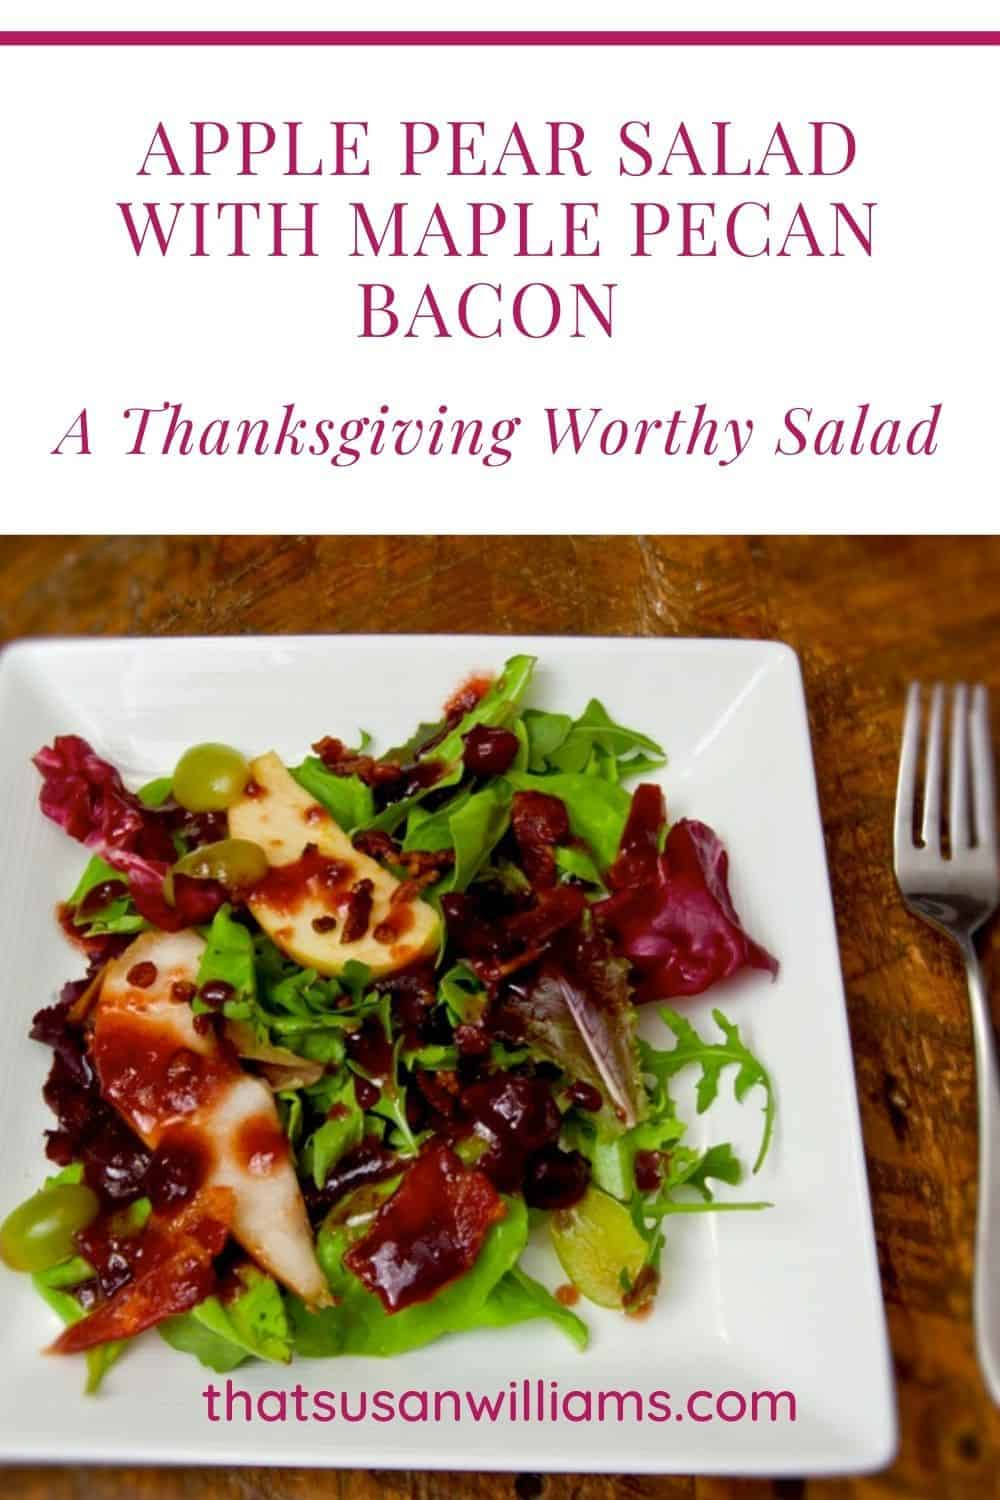 The perfect salad or side dish for Thanksgiving: Apple Pear Salad with Maple Pecan Bacon and Cranberry Vinaigrette